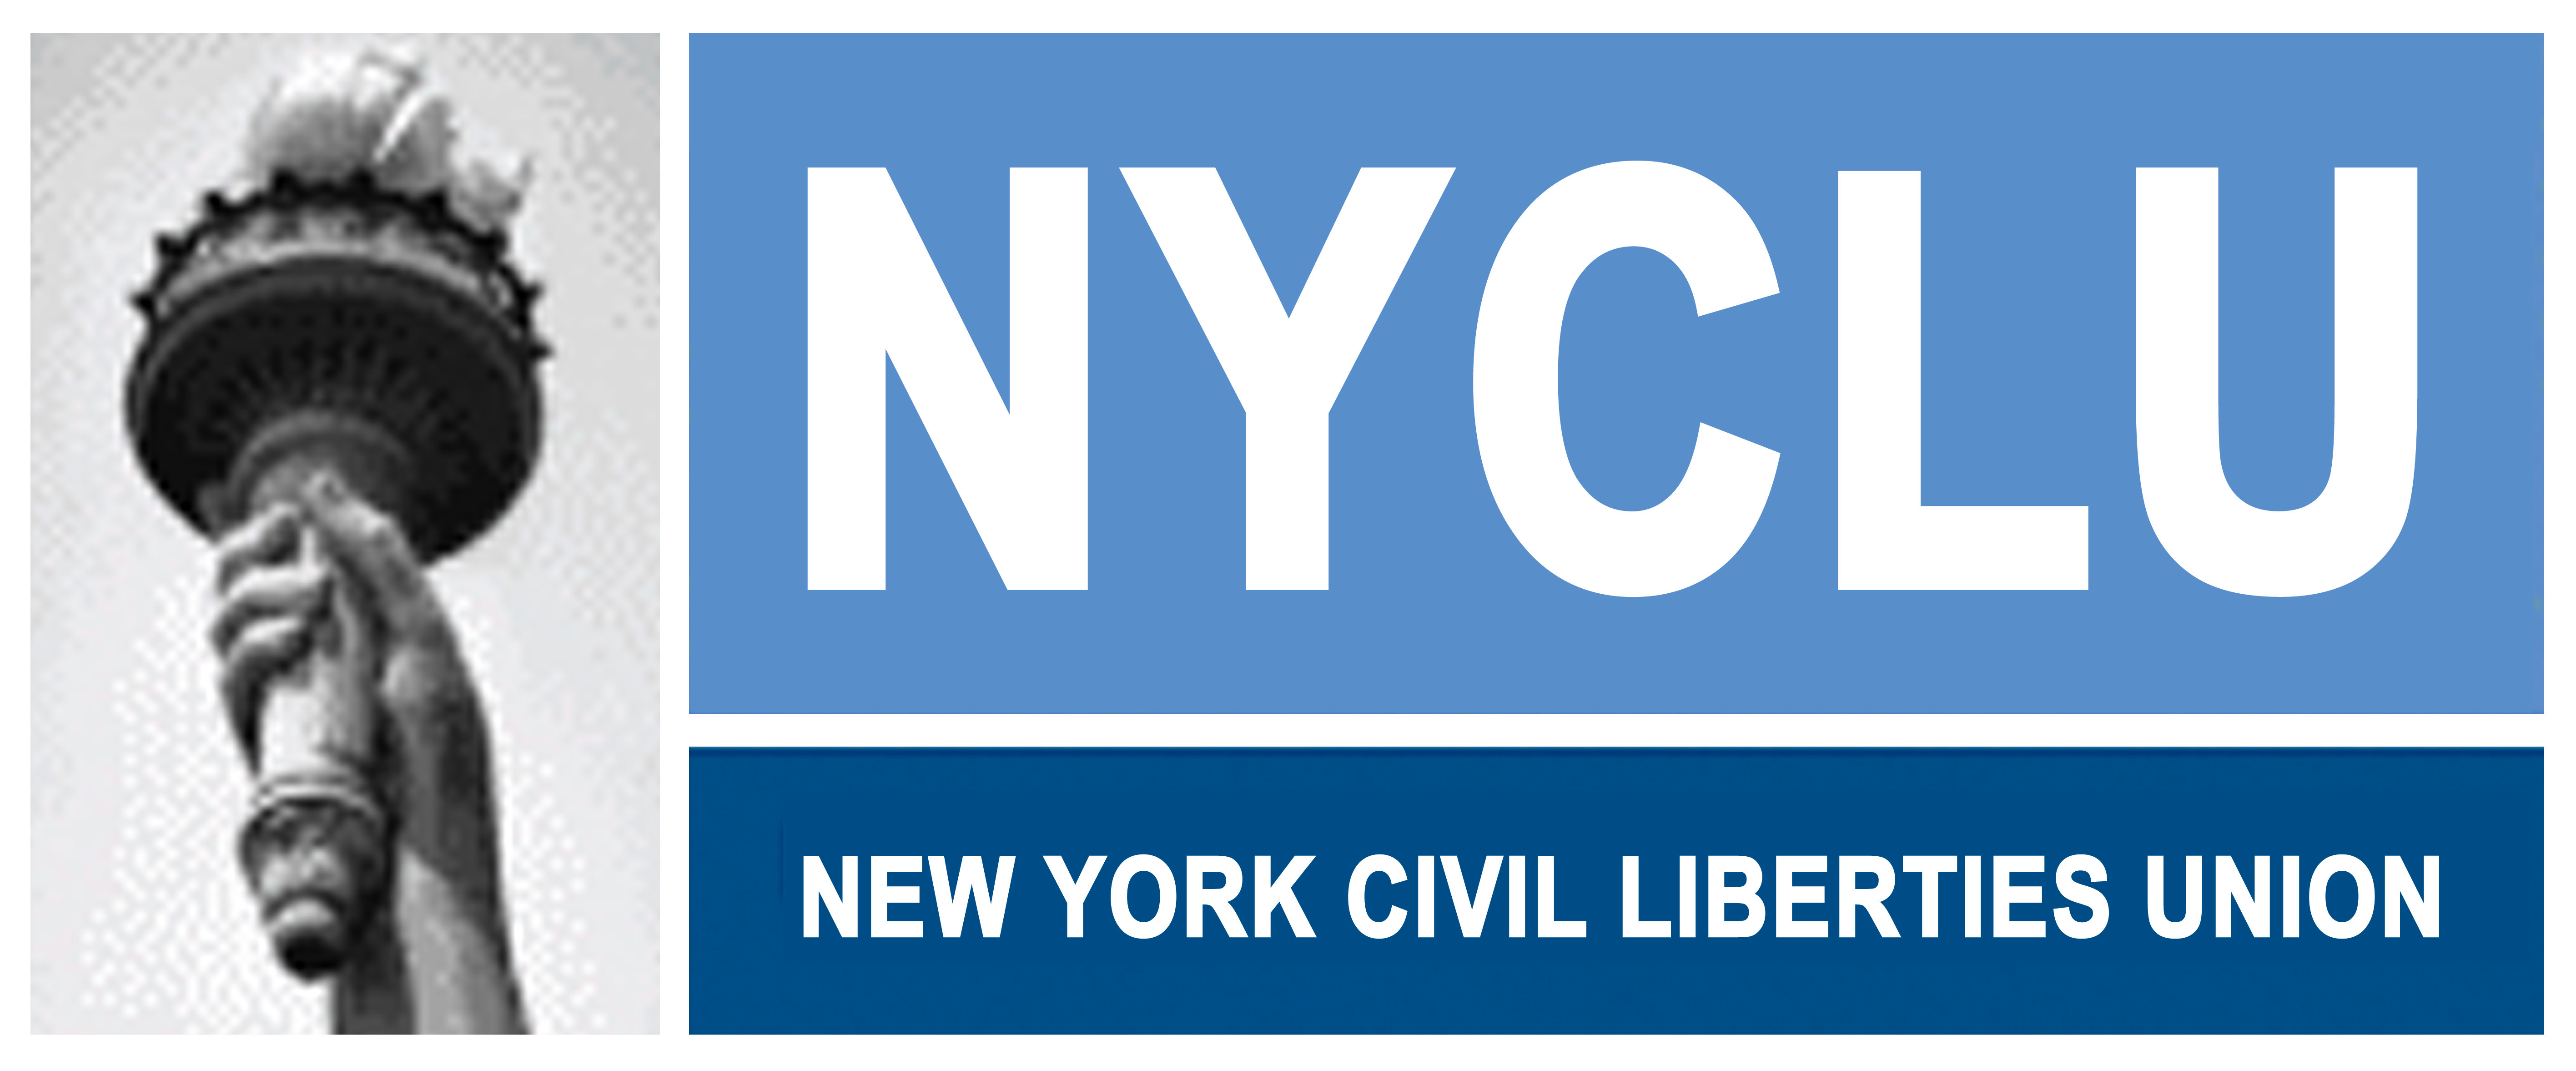 Huge_NYCLU_logo_color.jpeg